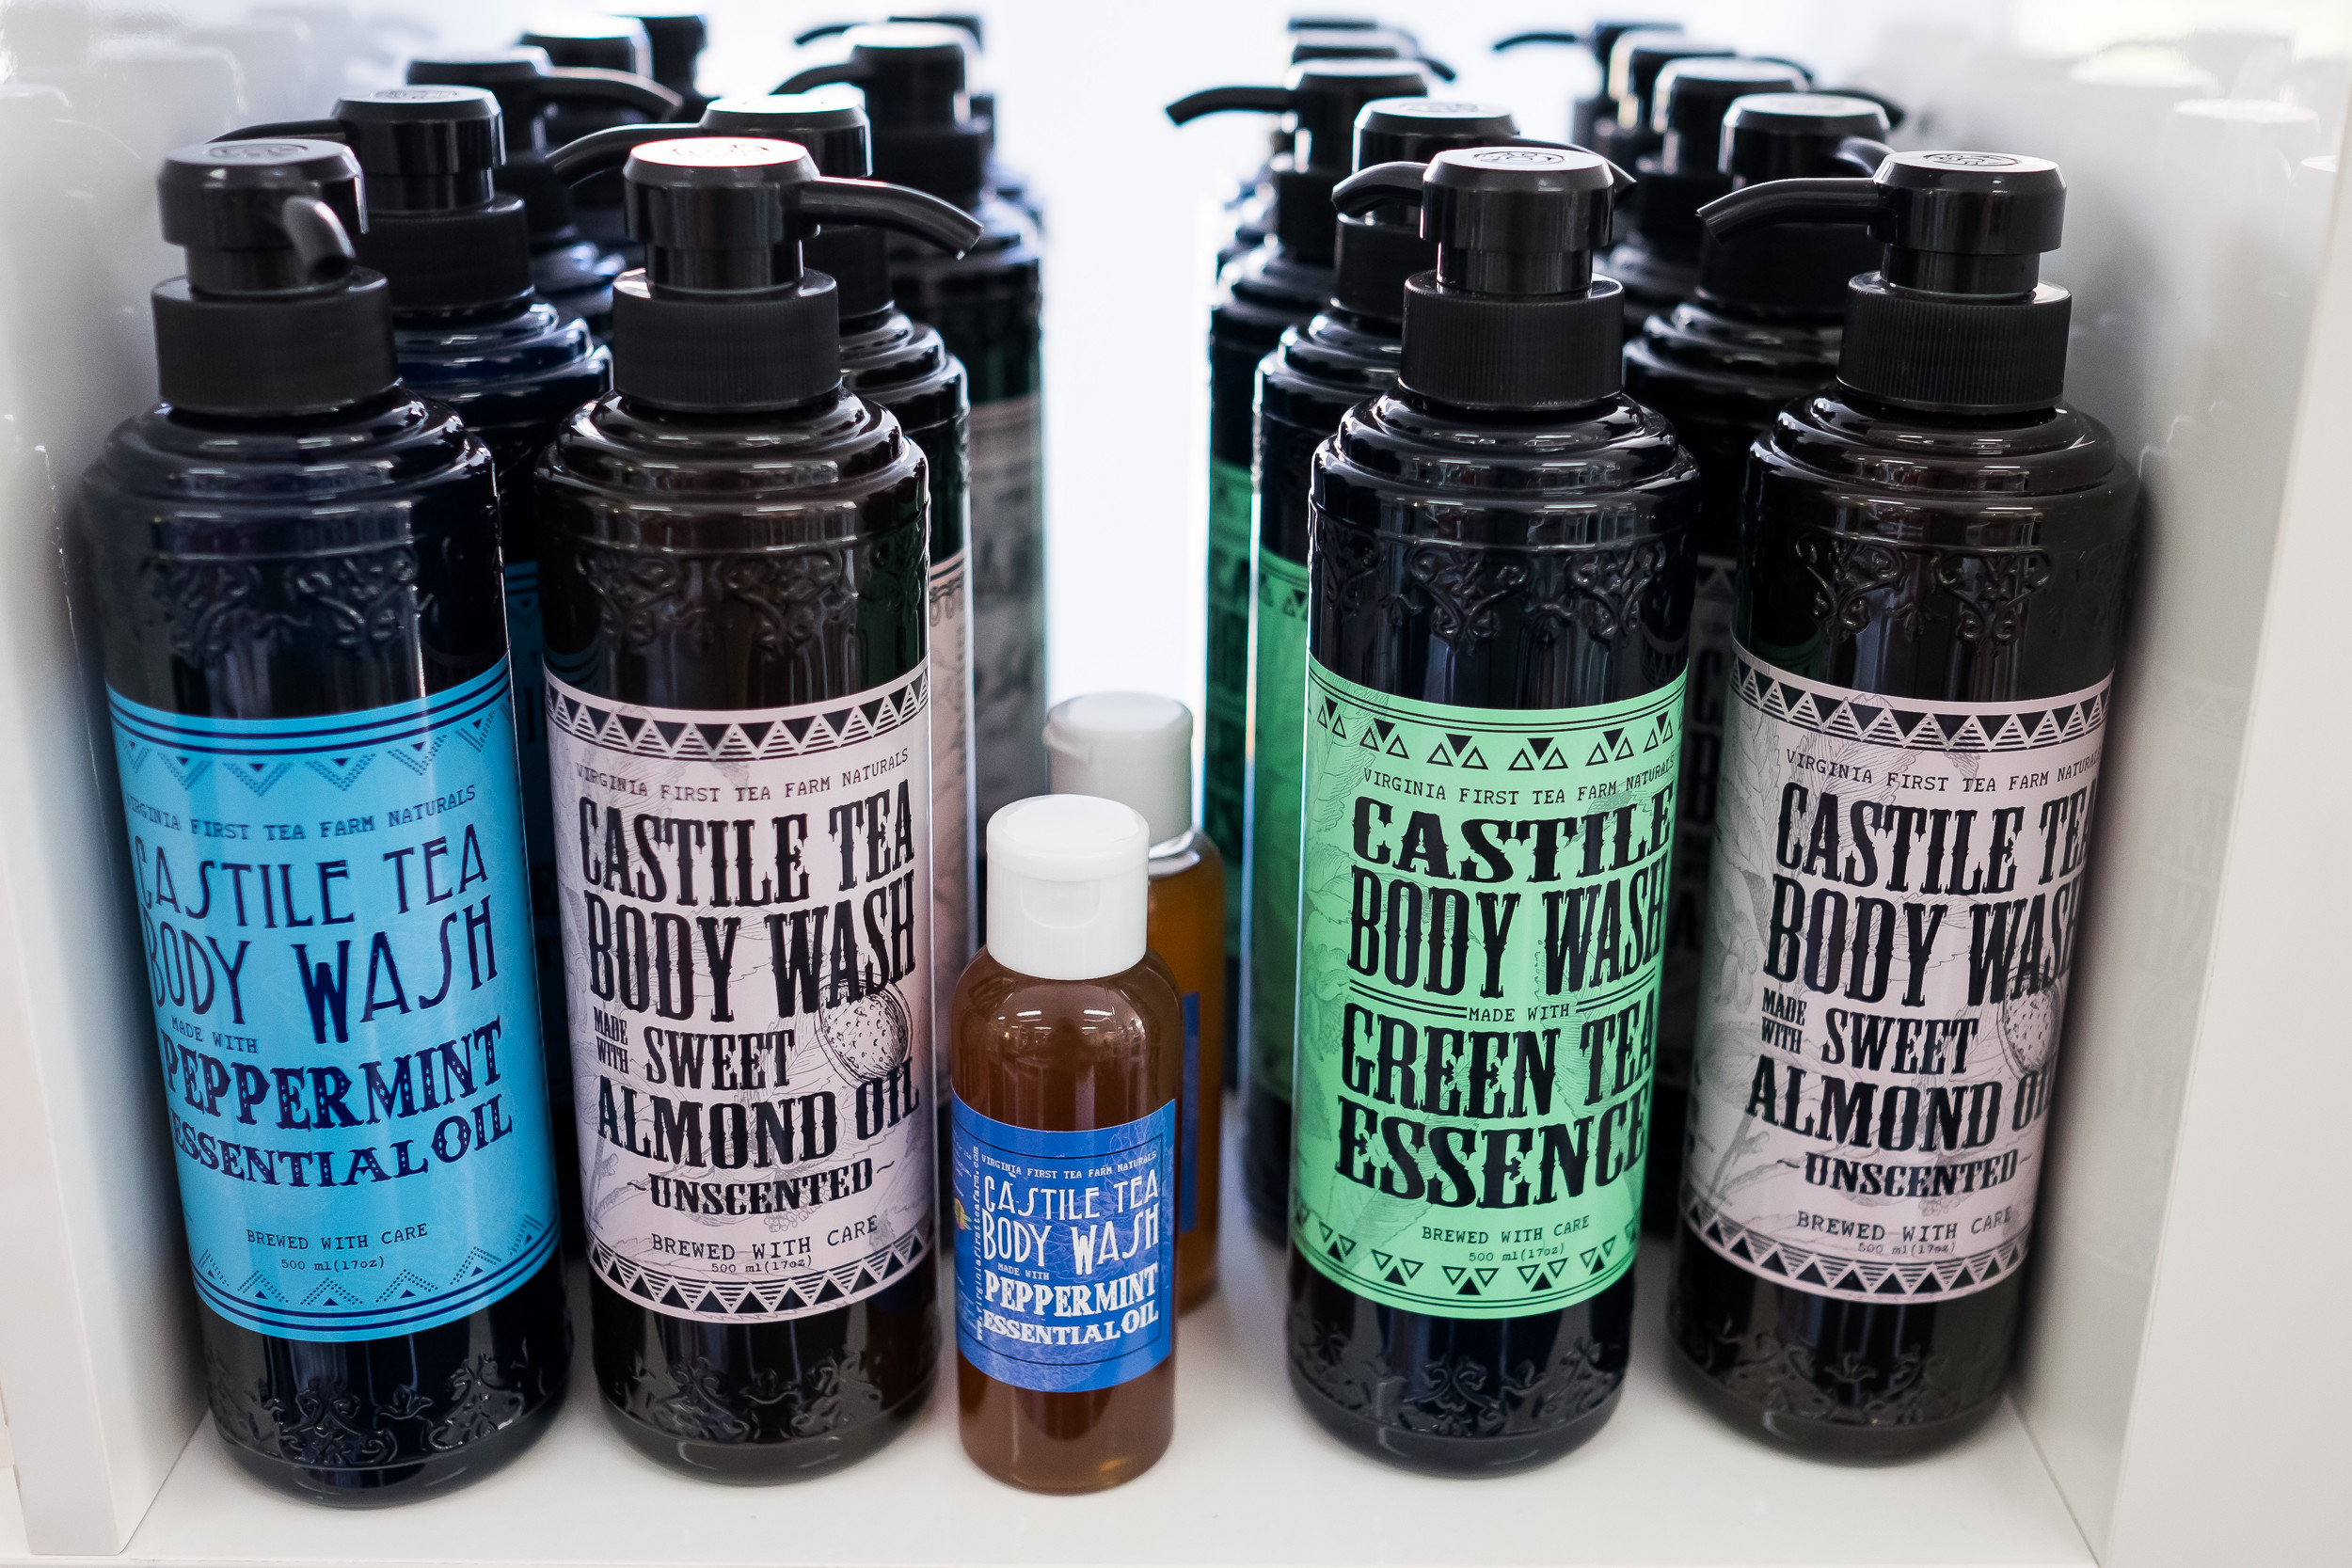 Tea-infused castille soap $16.95